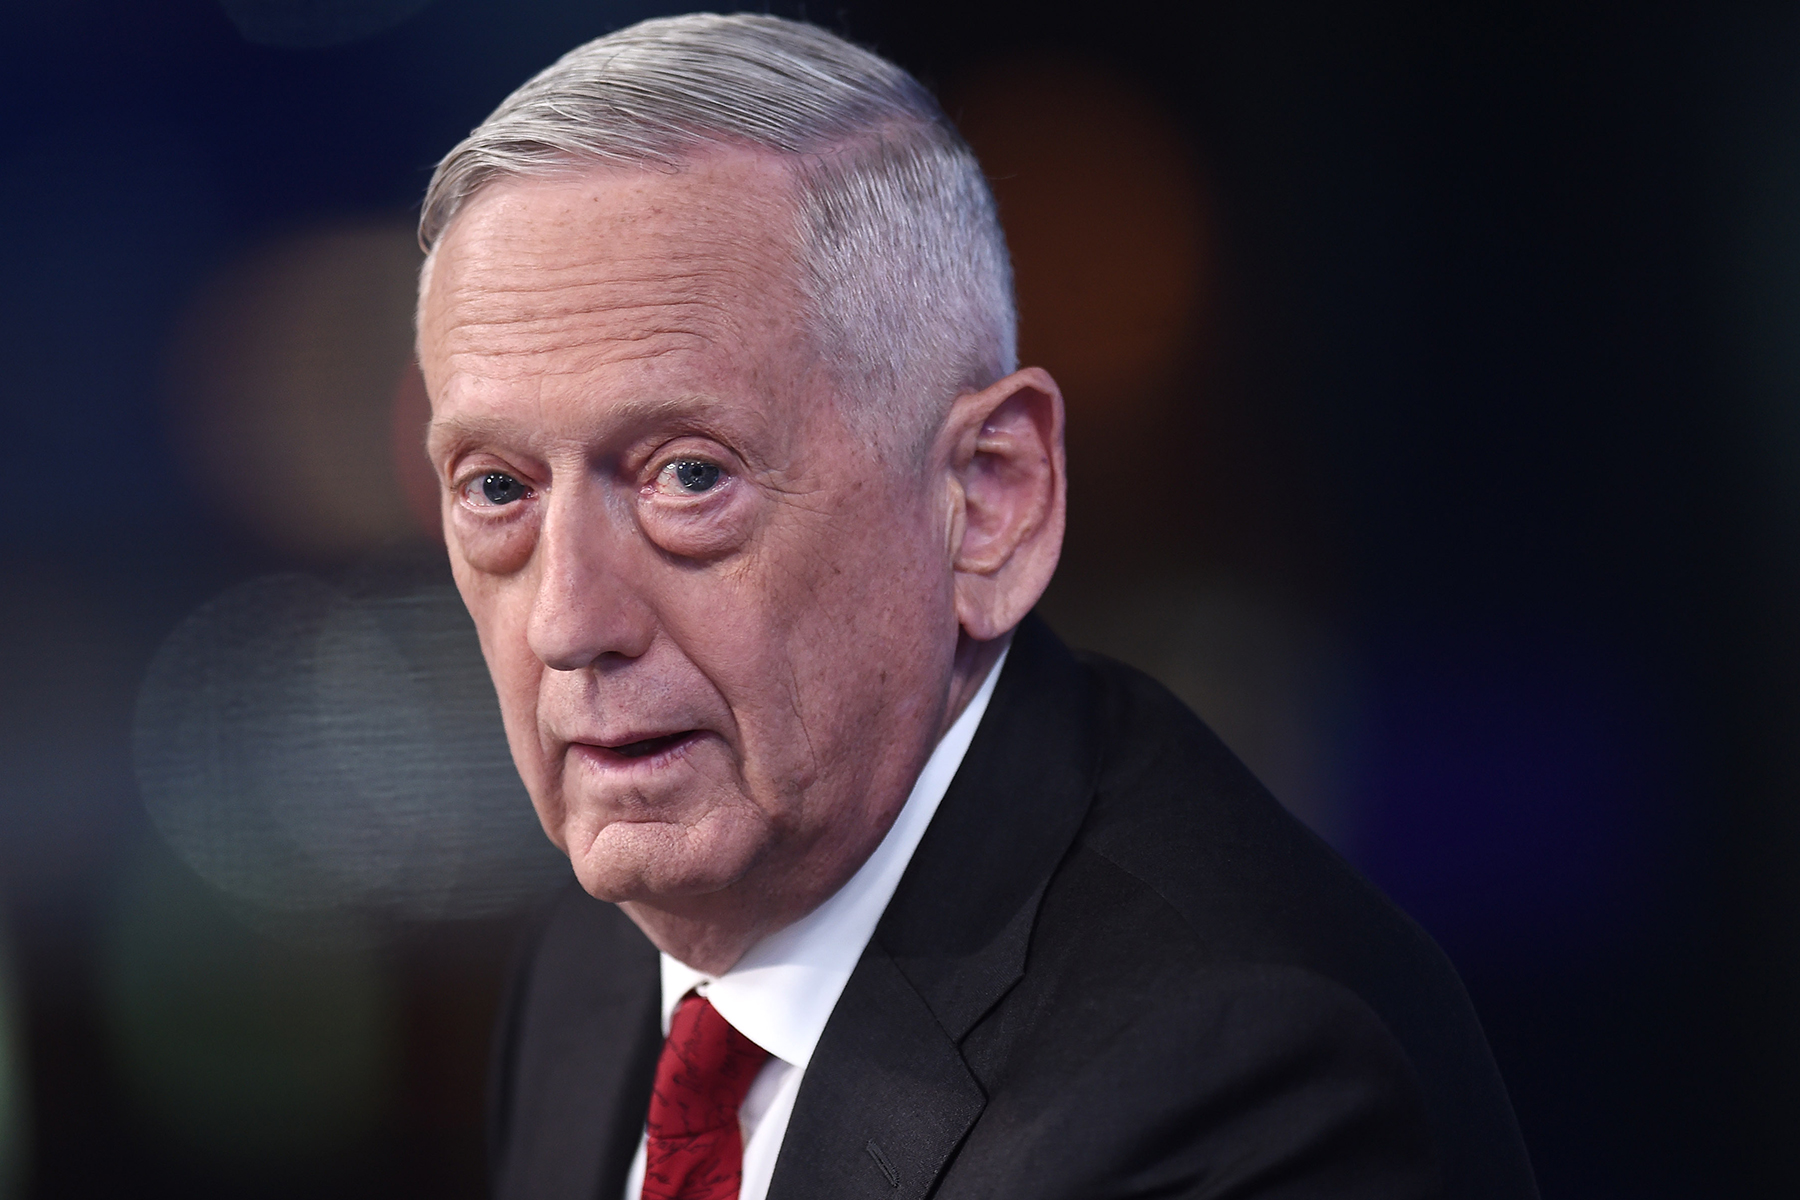 """NEW YORK, NEW YORK - SEPTEMBER 03: (EXCLUSIVE COVERAGE) Former U.S. Secretary of Defense James Mattis visits FOX News Channel's """"The Story with Martha MacCallum"""" on September 03, 2019 in New York City. (Photo by Steven Ferdman/Getty Images)"""